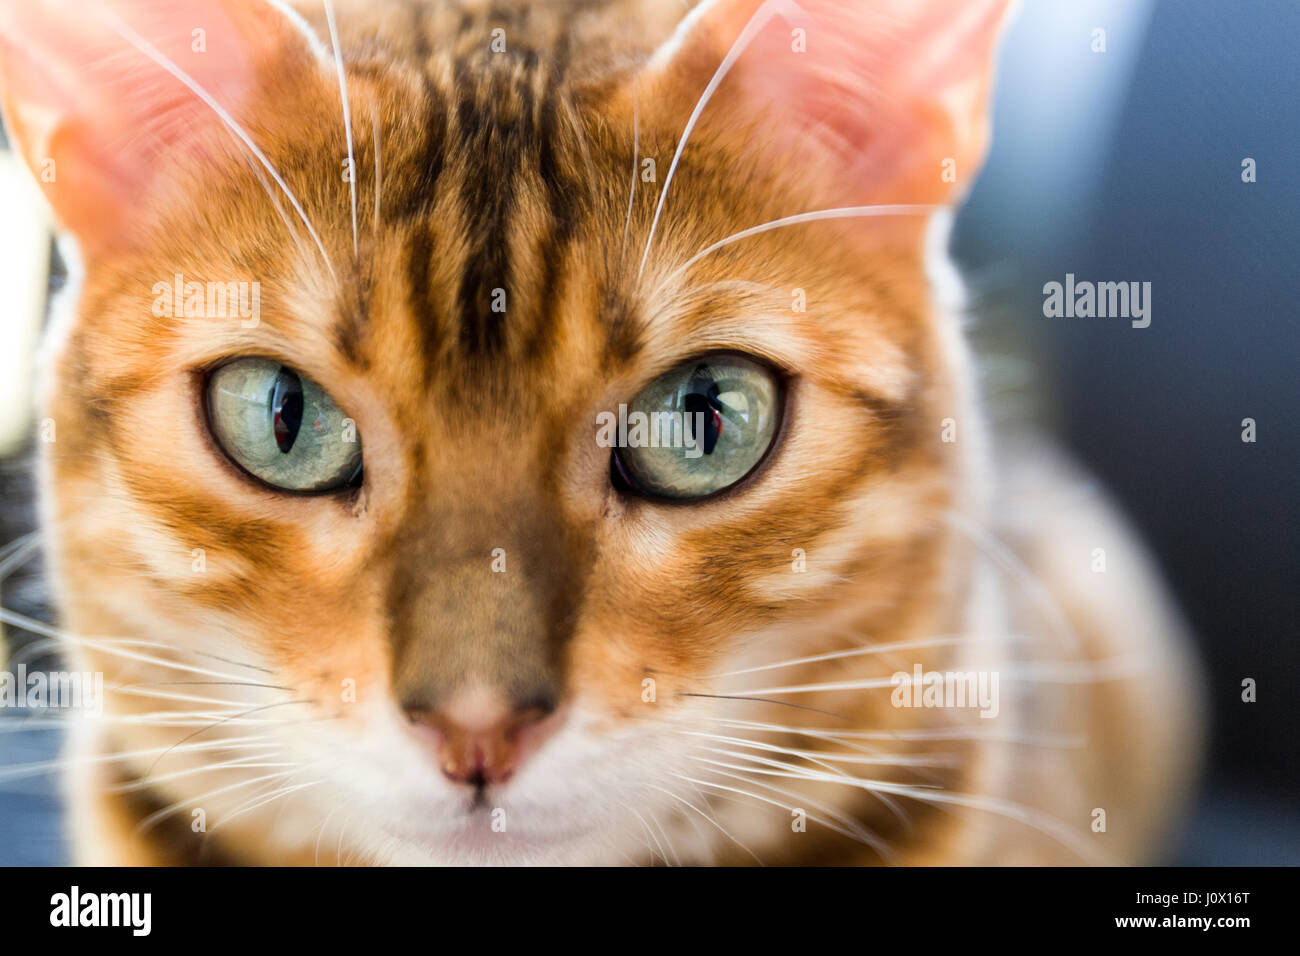 Close up portrait of female Bengal cat eyes and face  Model Release: No.  Property Release: Yes. - Stock Image